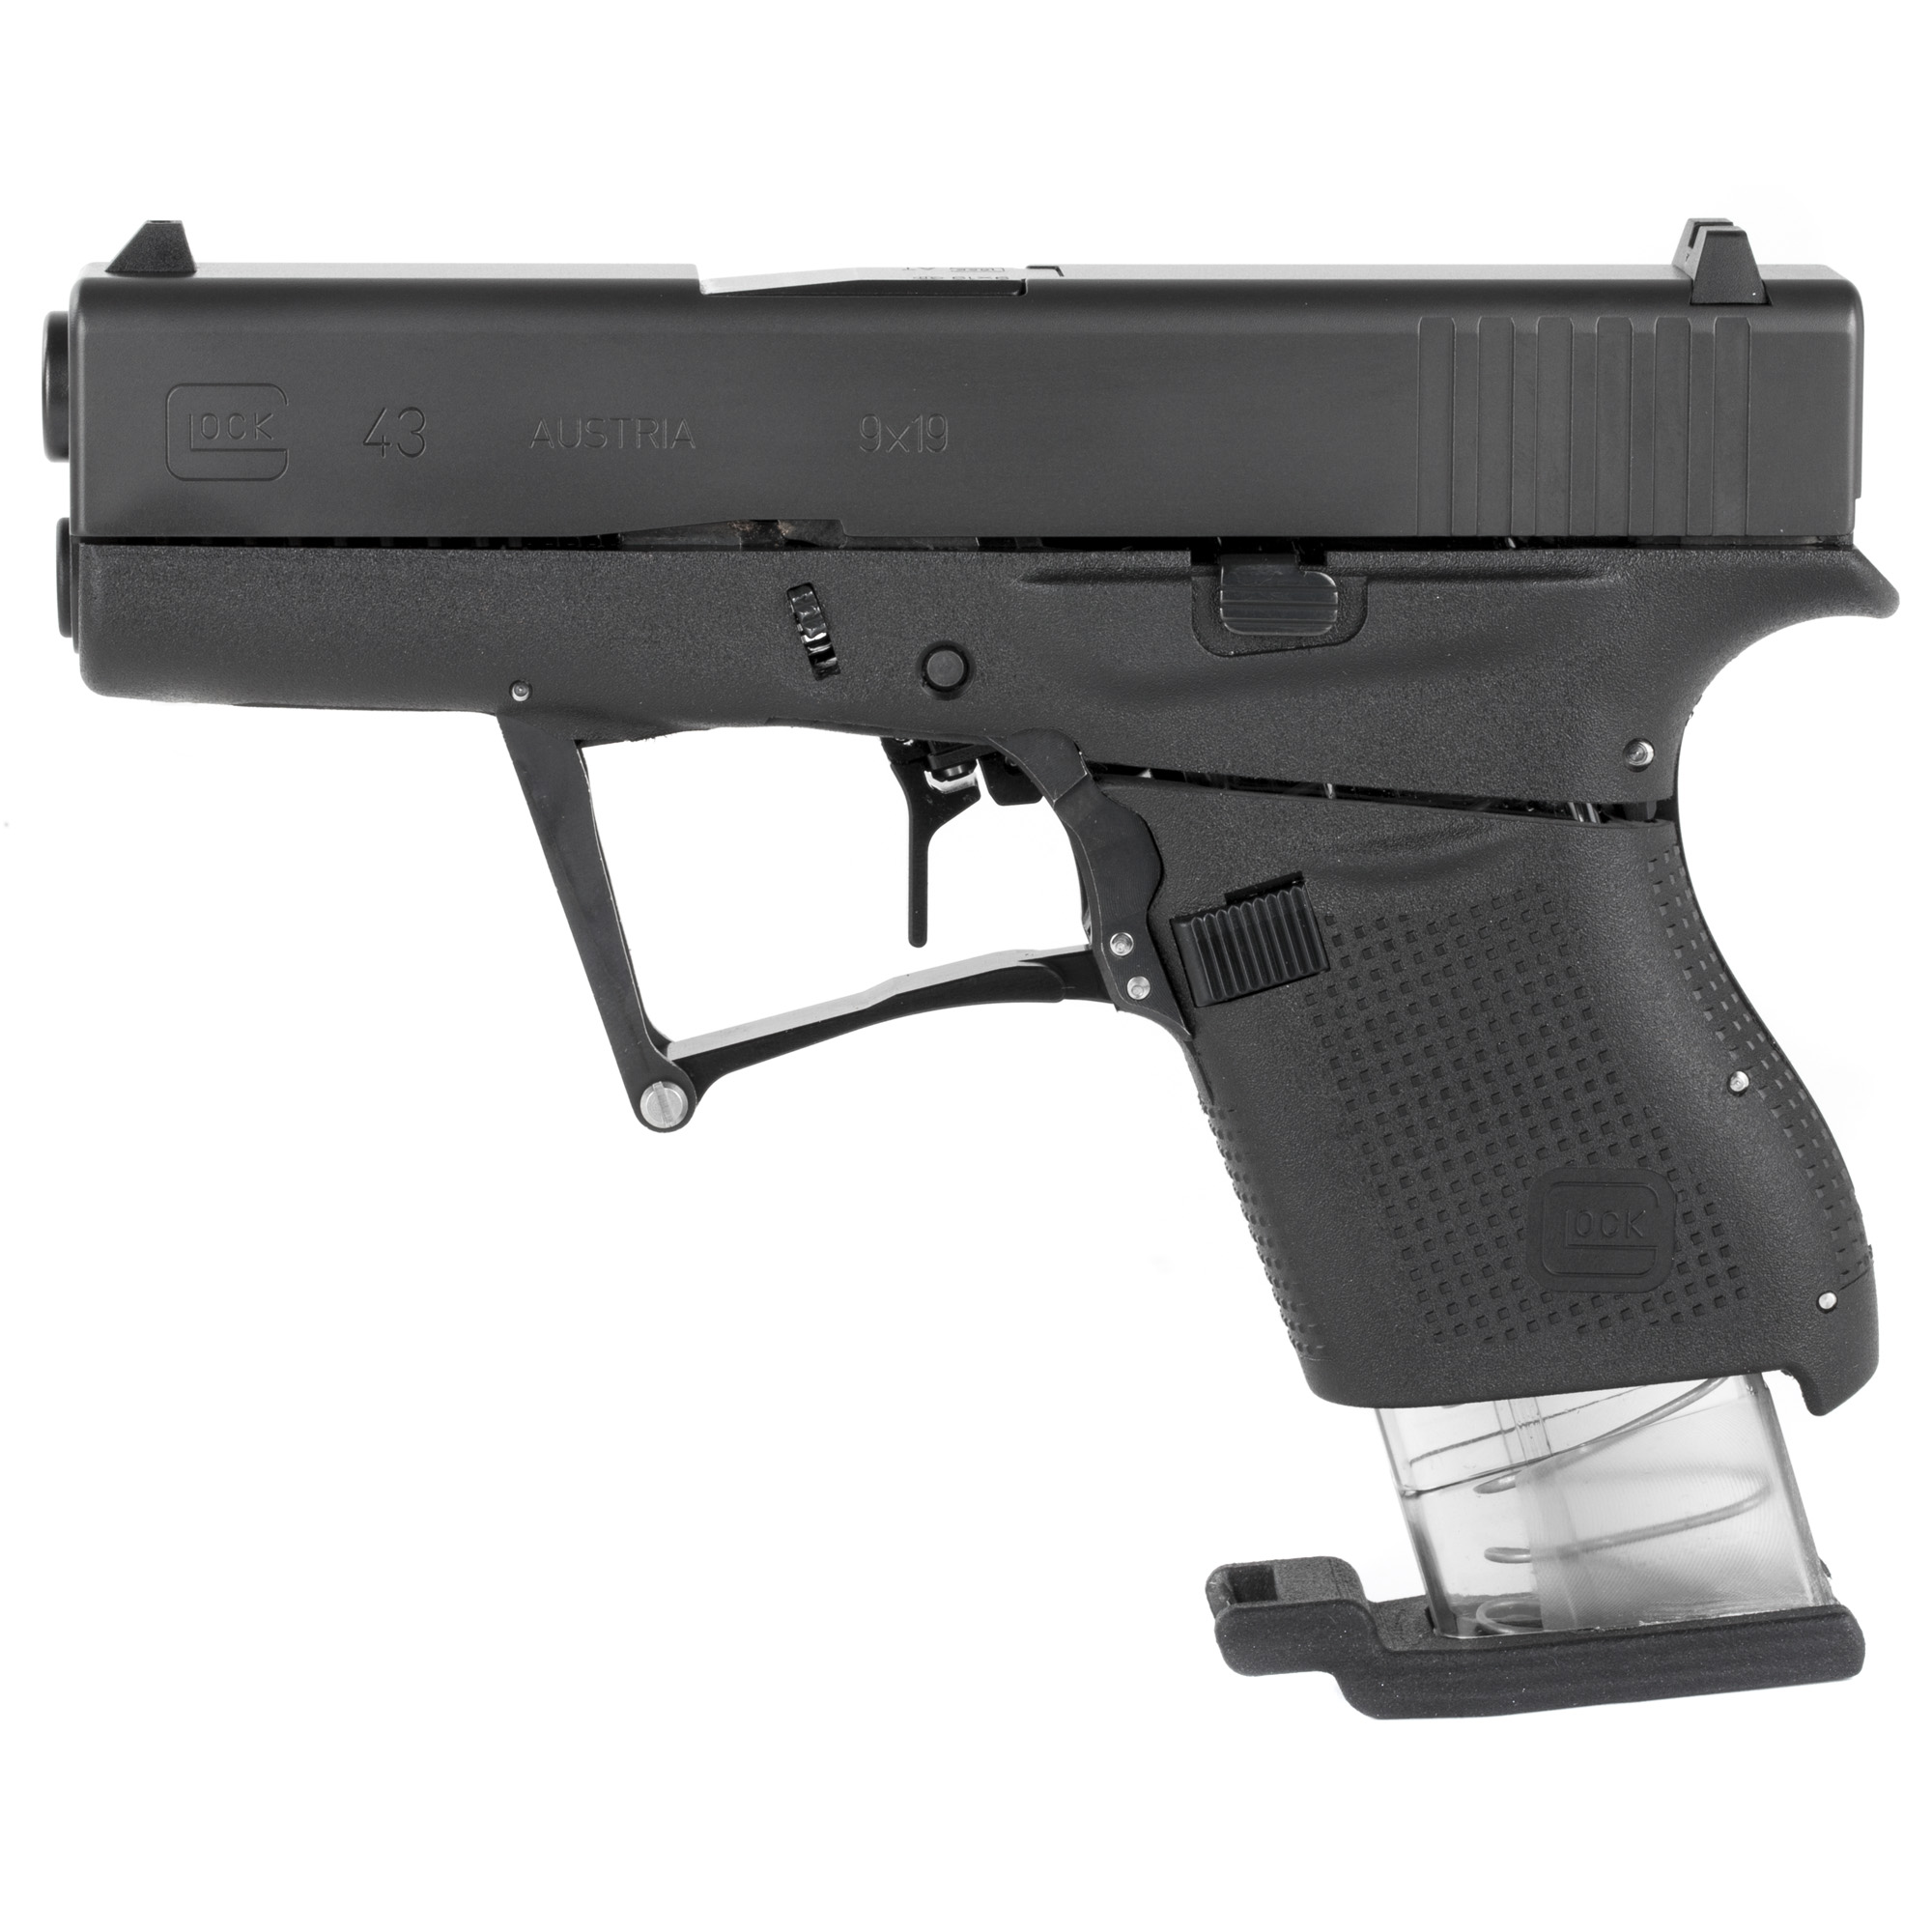 """If you are going to carry something everyday AND have your life depend on it"""" you need to get the best. Full Conceal gives you more options and more convenience in a safe and compact conversion. Discover how well the M3D can integrate with your daily life"""" providing you more comfort and 100% confidence in concealment without sacrificing firepower."""